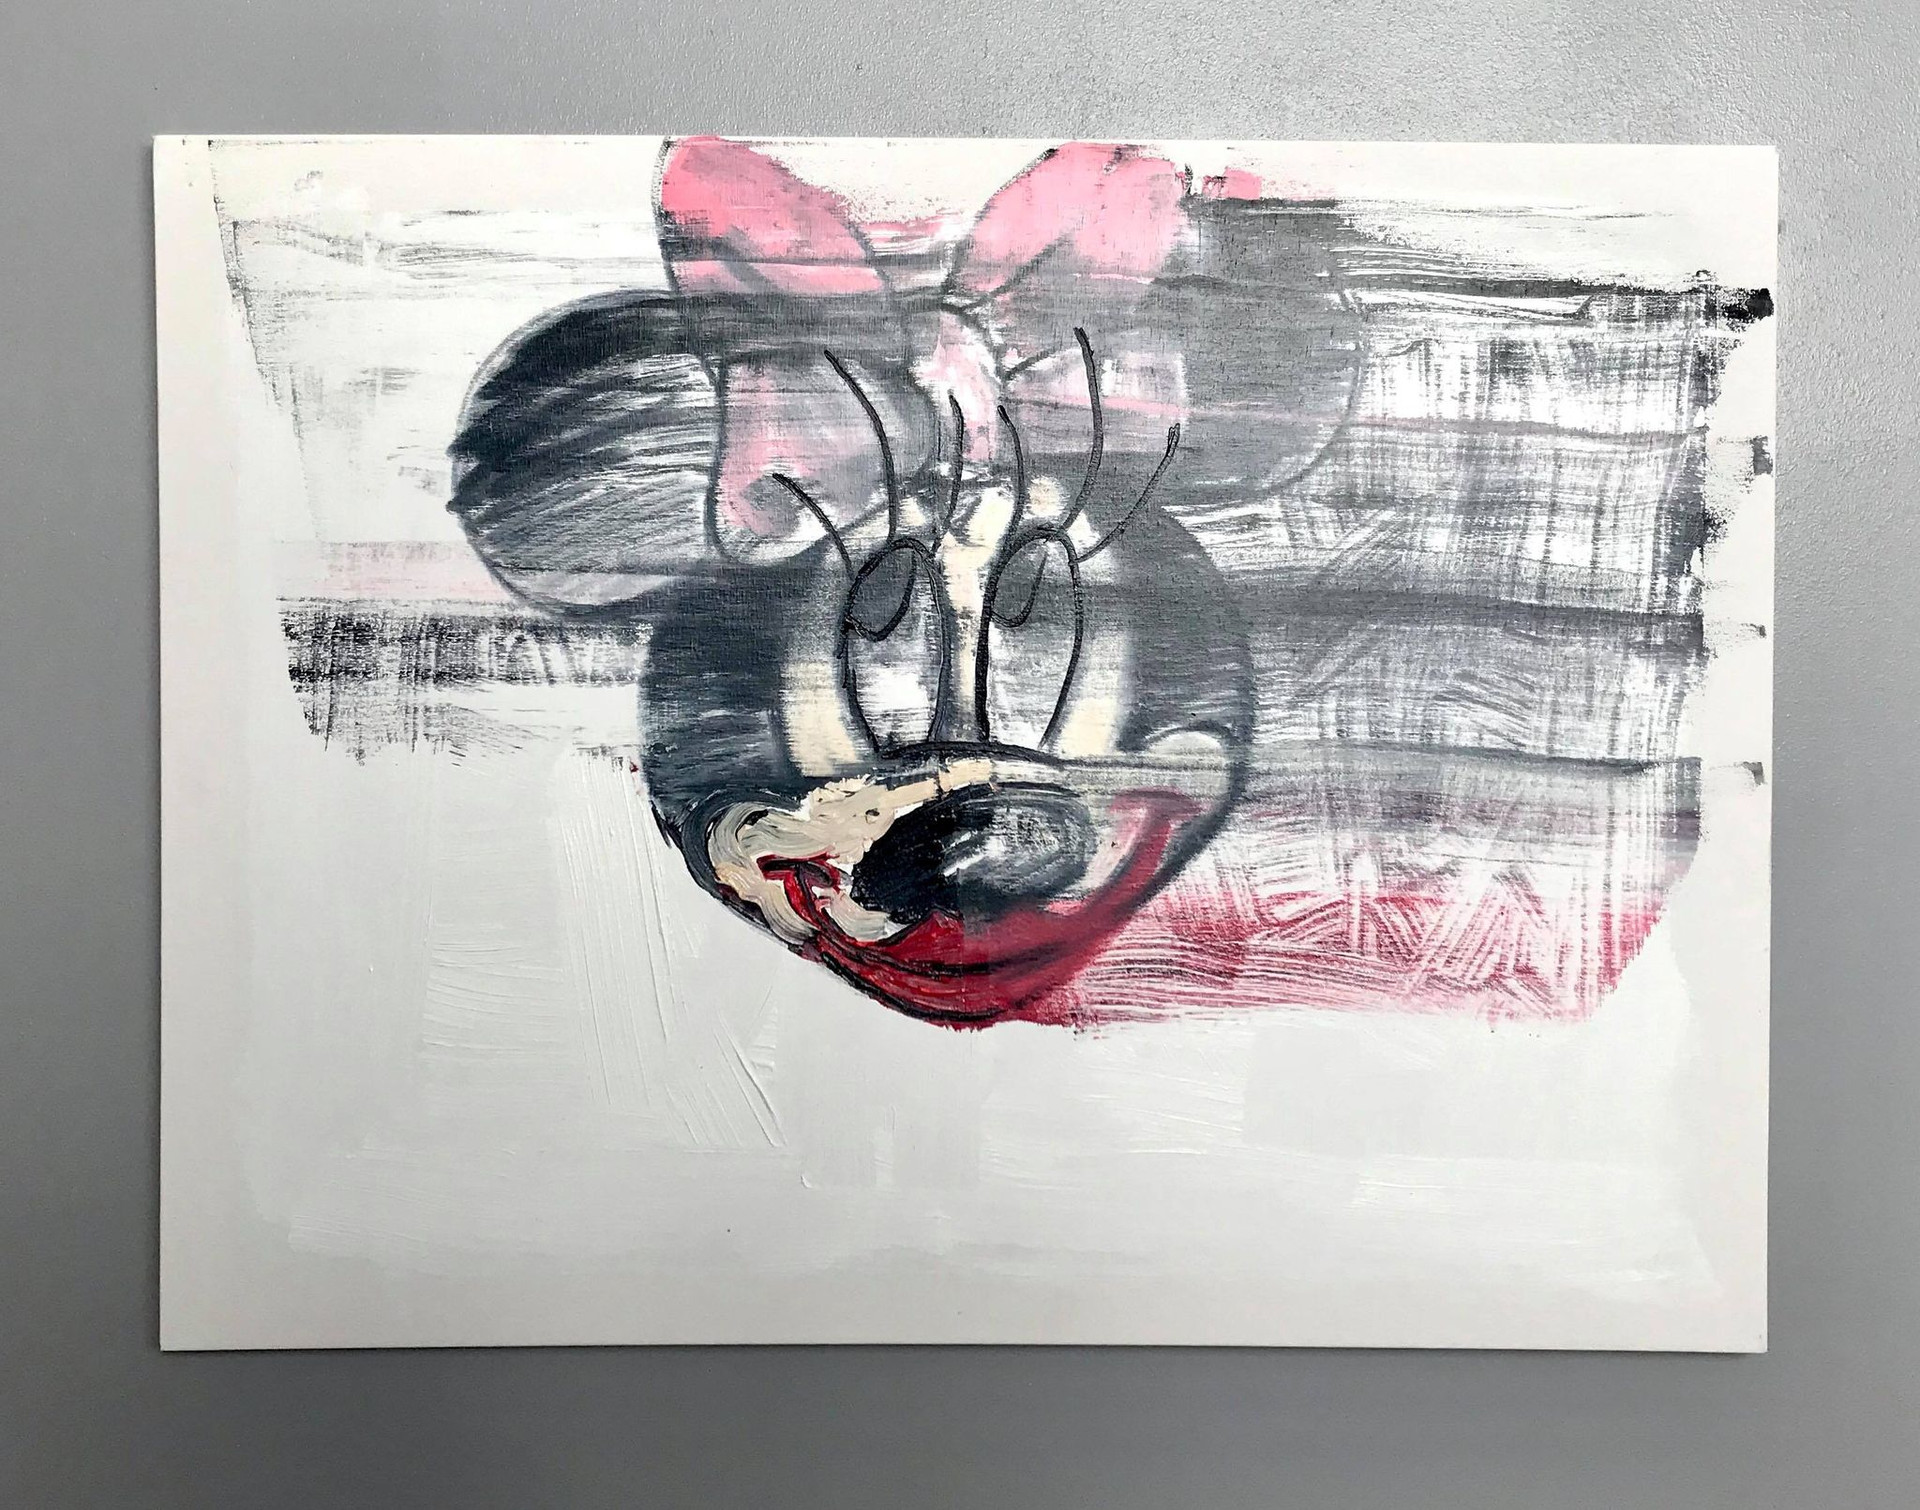 Minnie Mousy (2020), Oil Painting, Dimensions: 23.5 x 31.5 inches